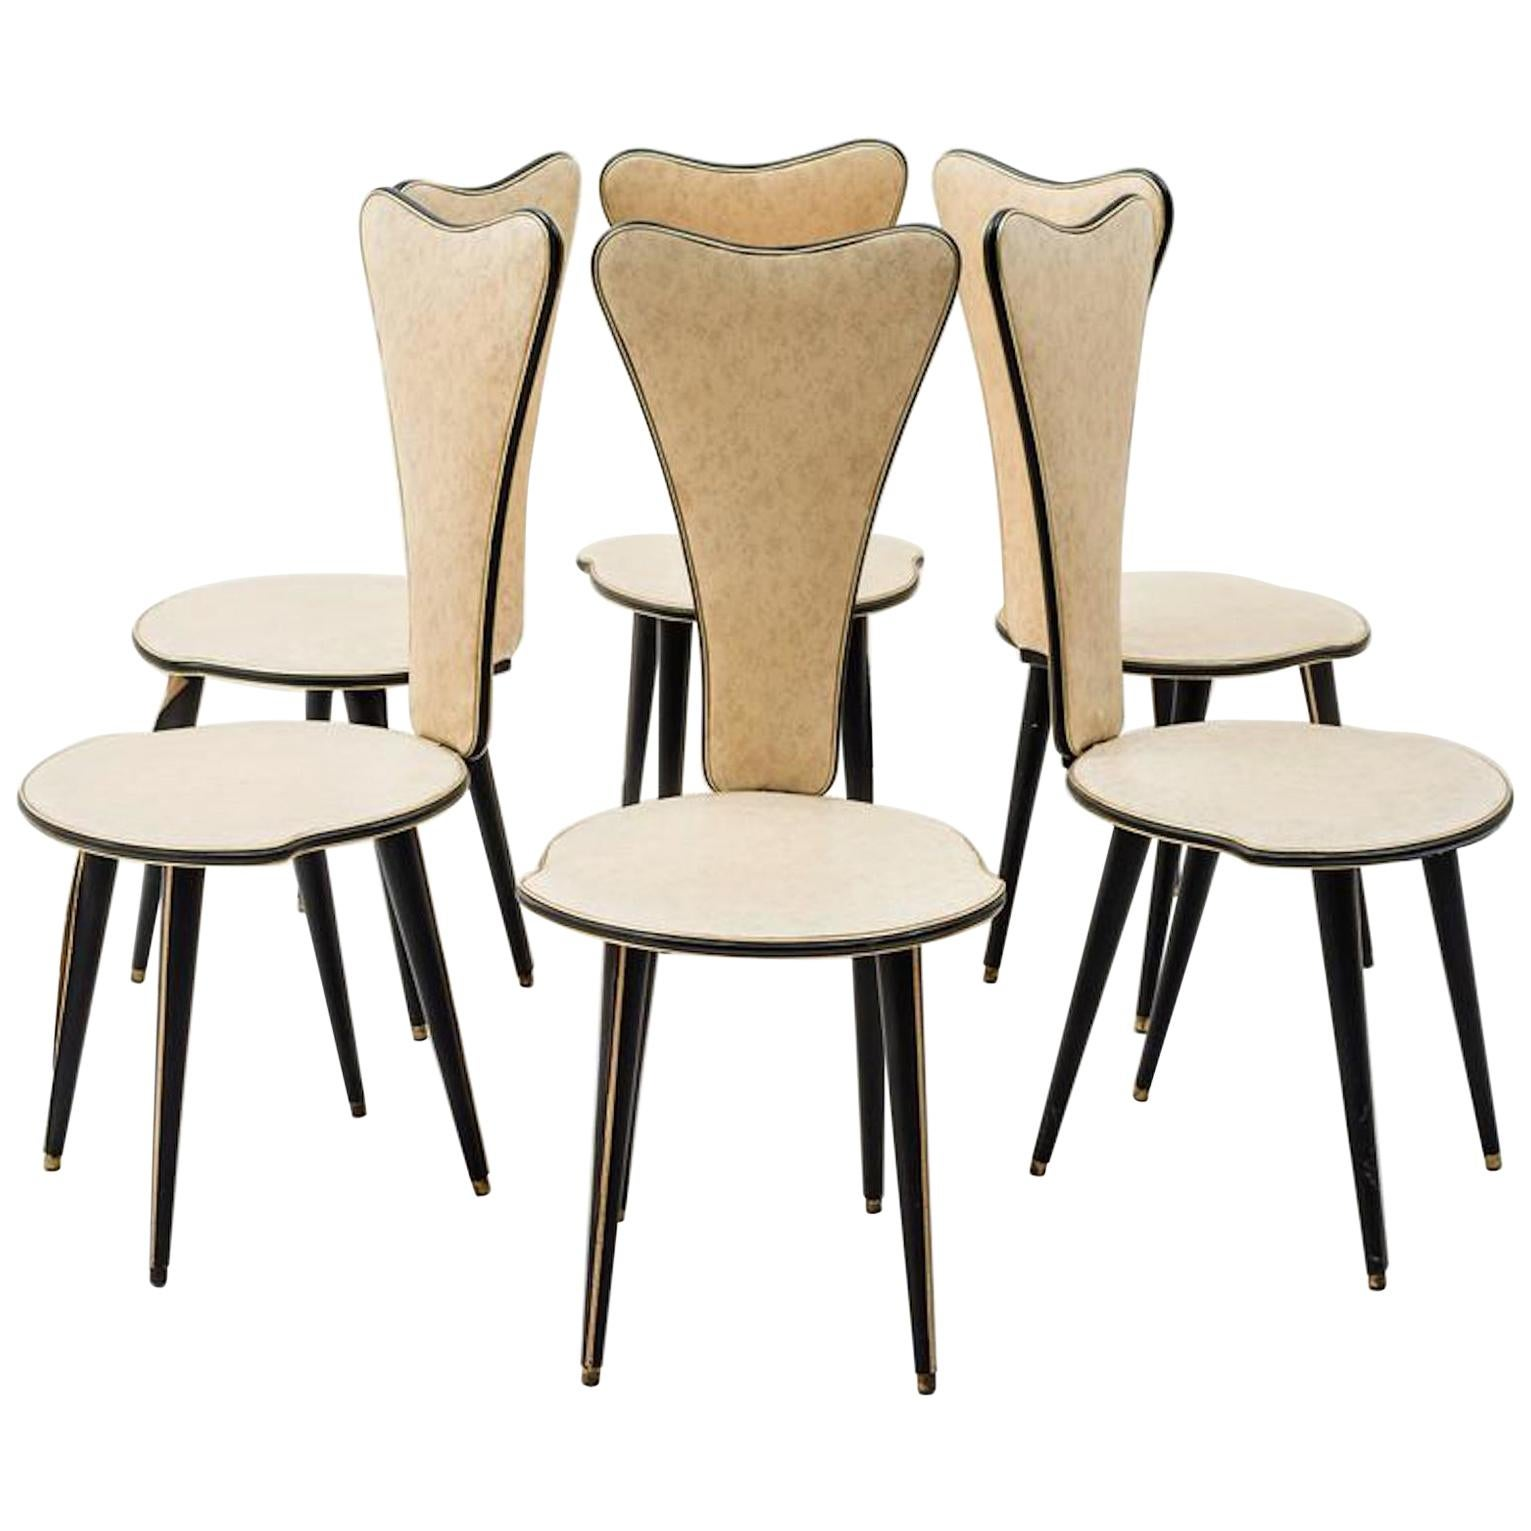 Set of Six Chairs by Umberto Mascagni, 1950s